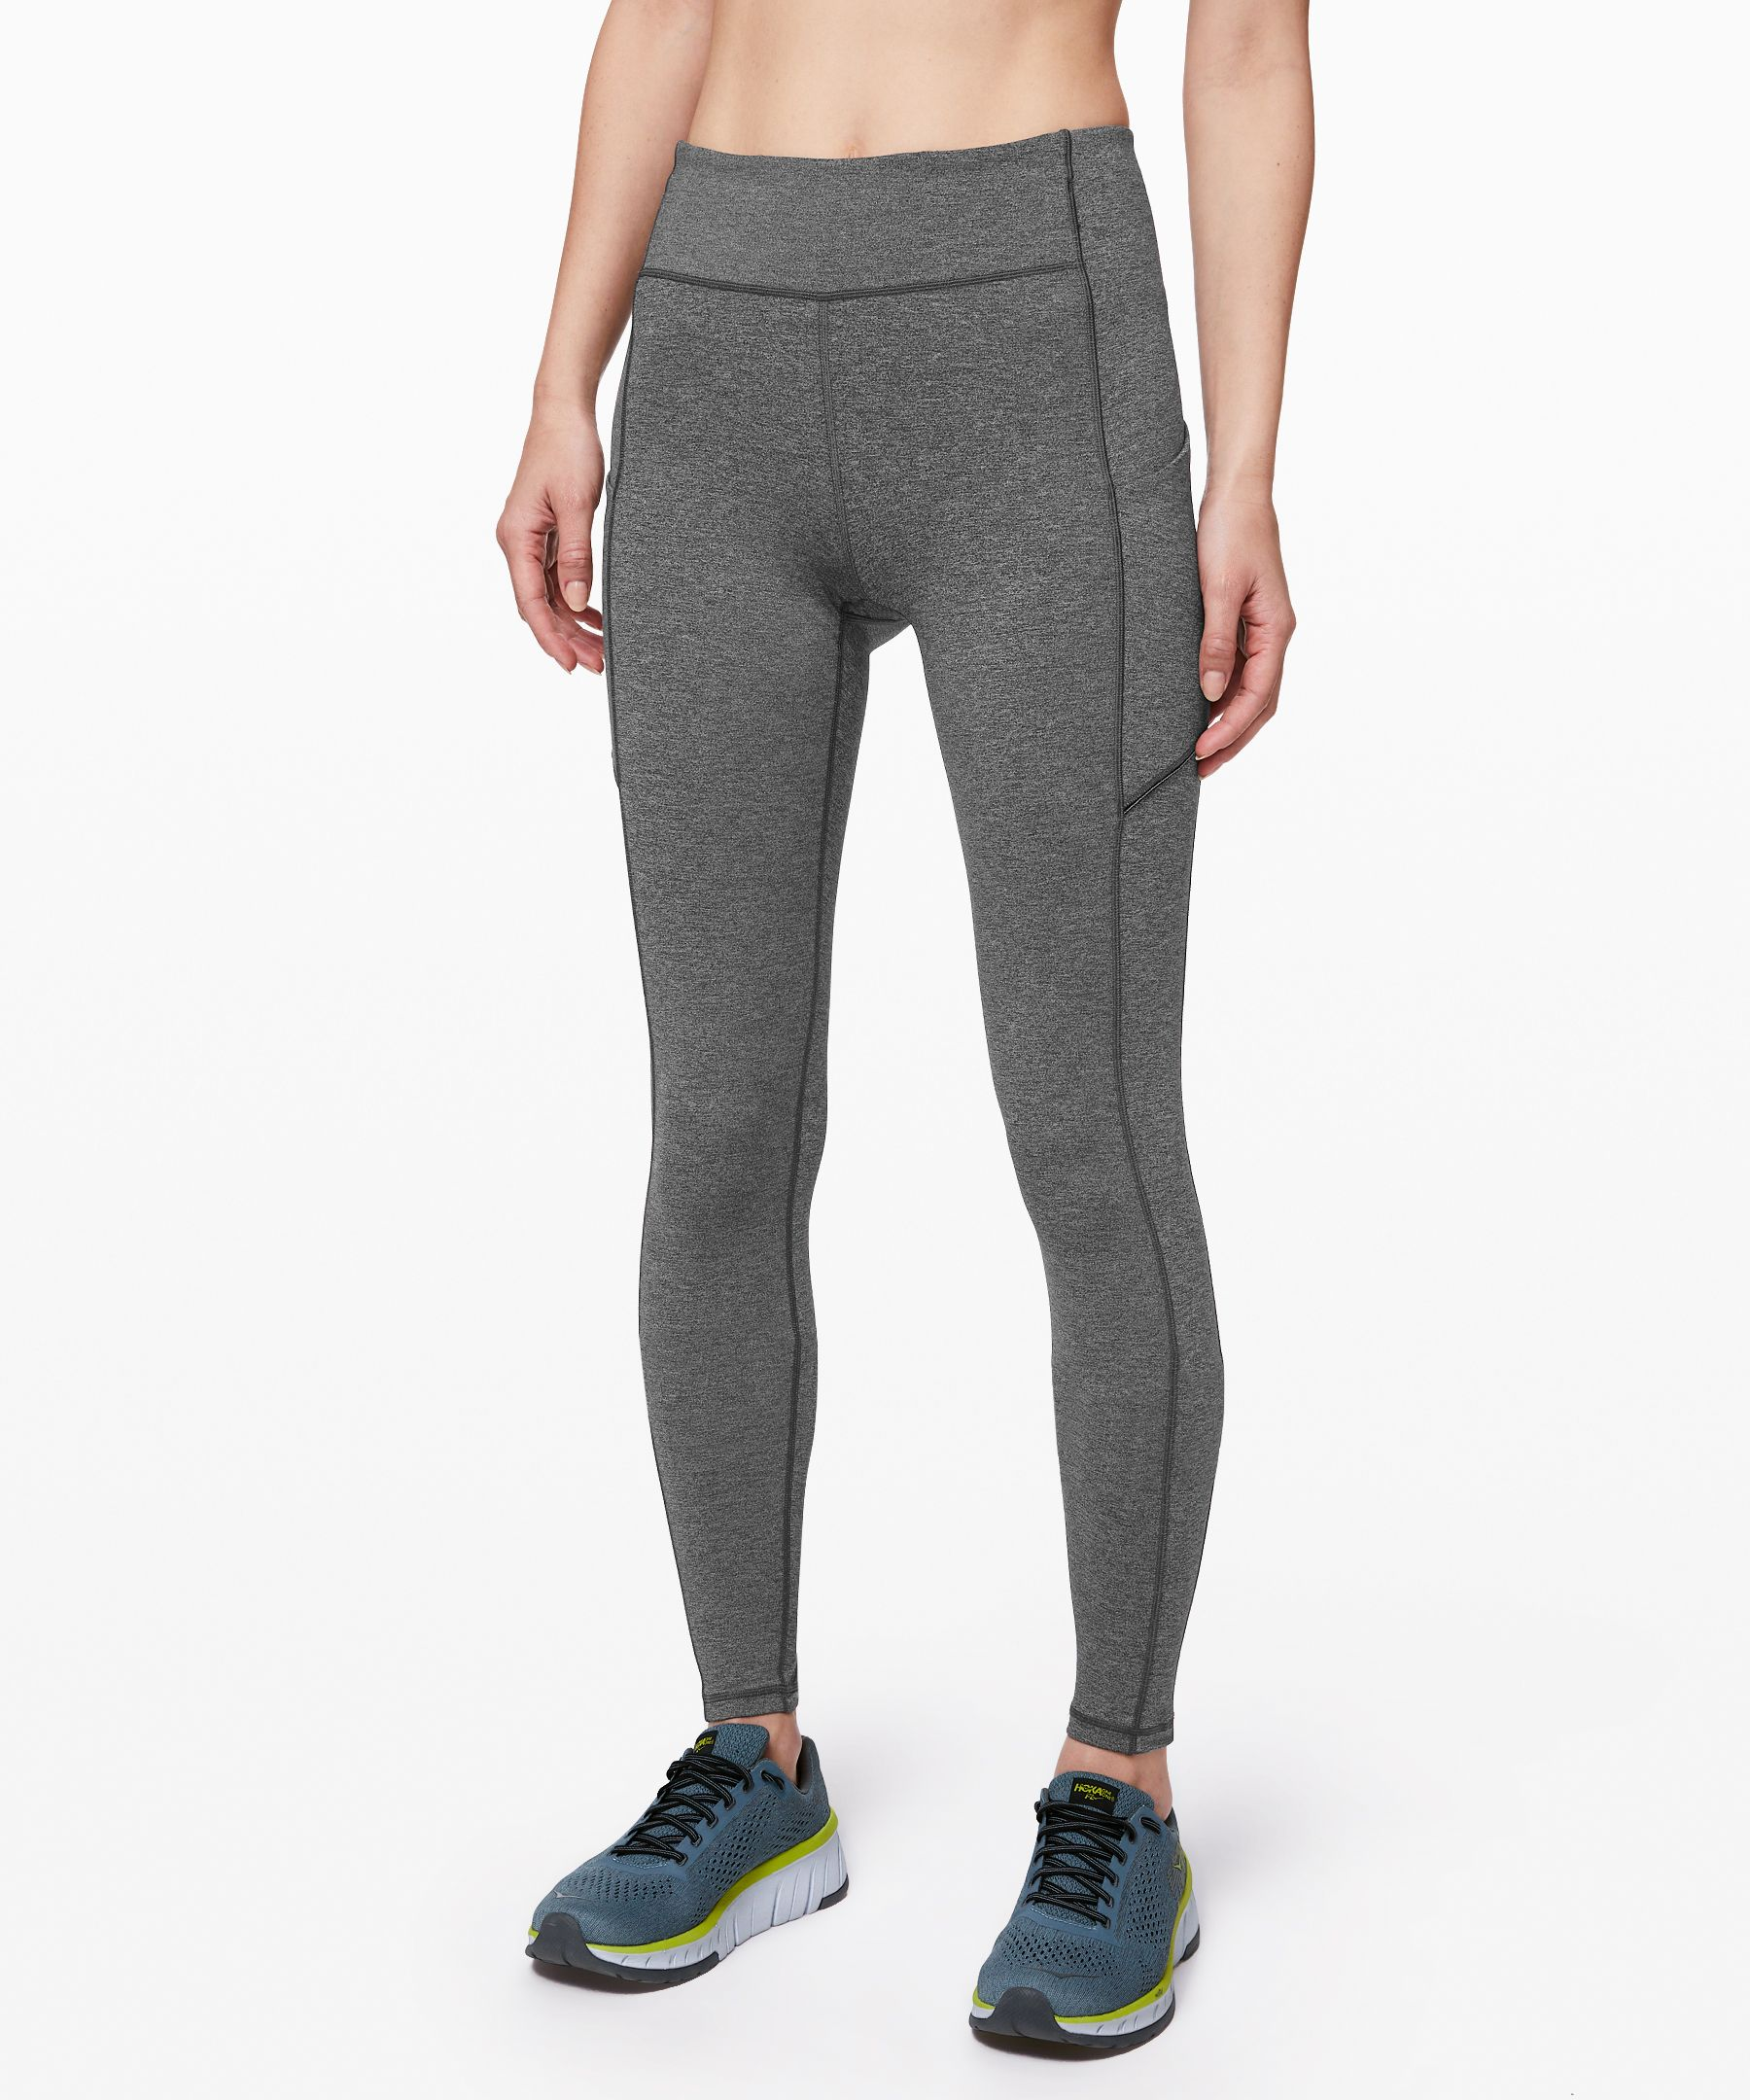 Focus on your gait, not your  gear, in these lightweight,  sweat-wicking run tights that  are fully loaded with built-in  storage and reflectivity.